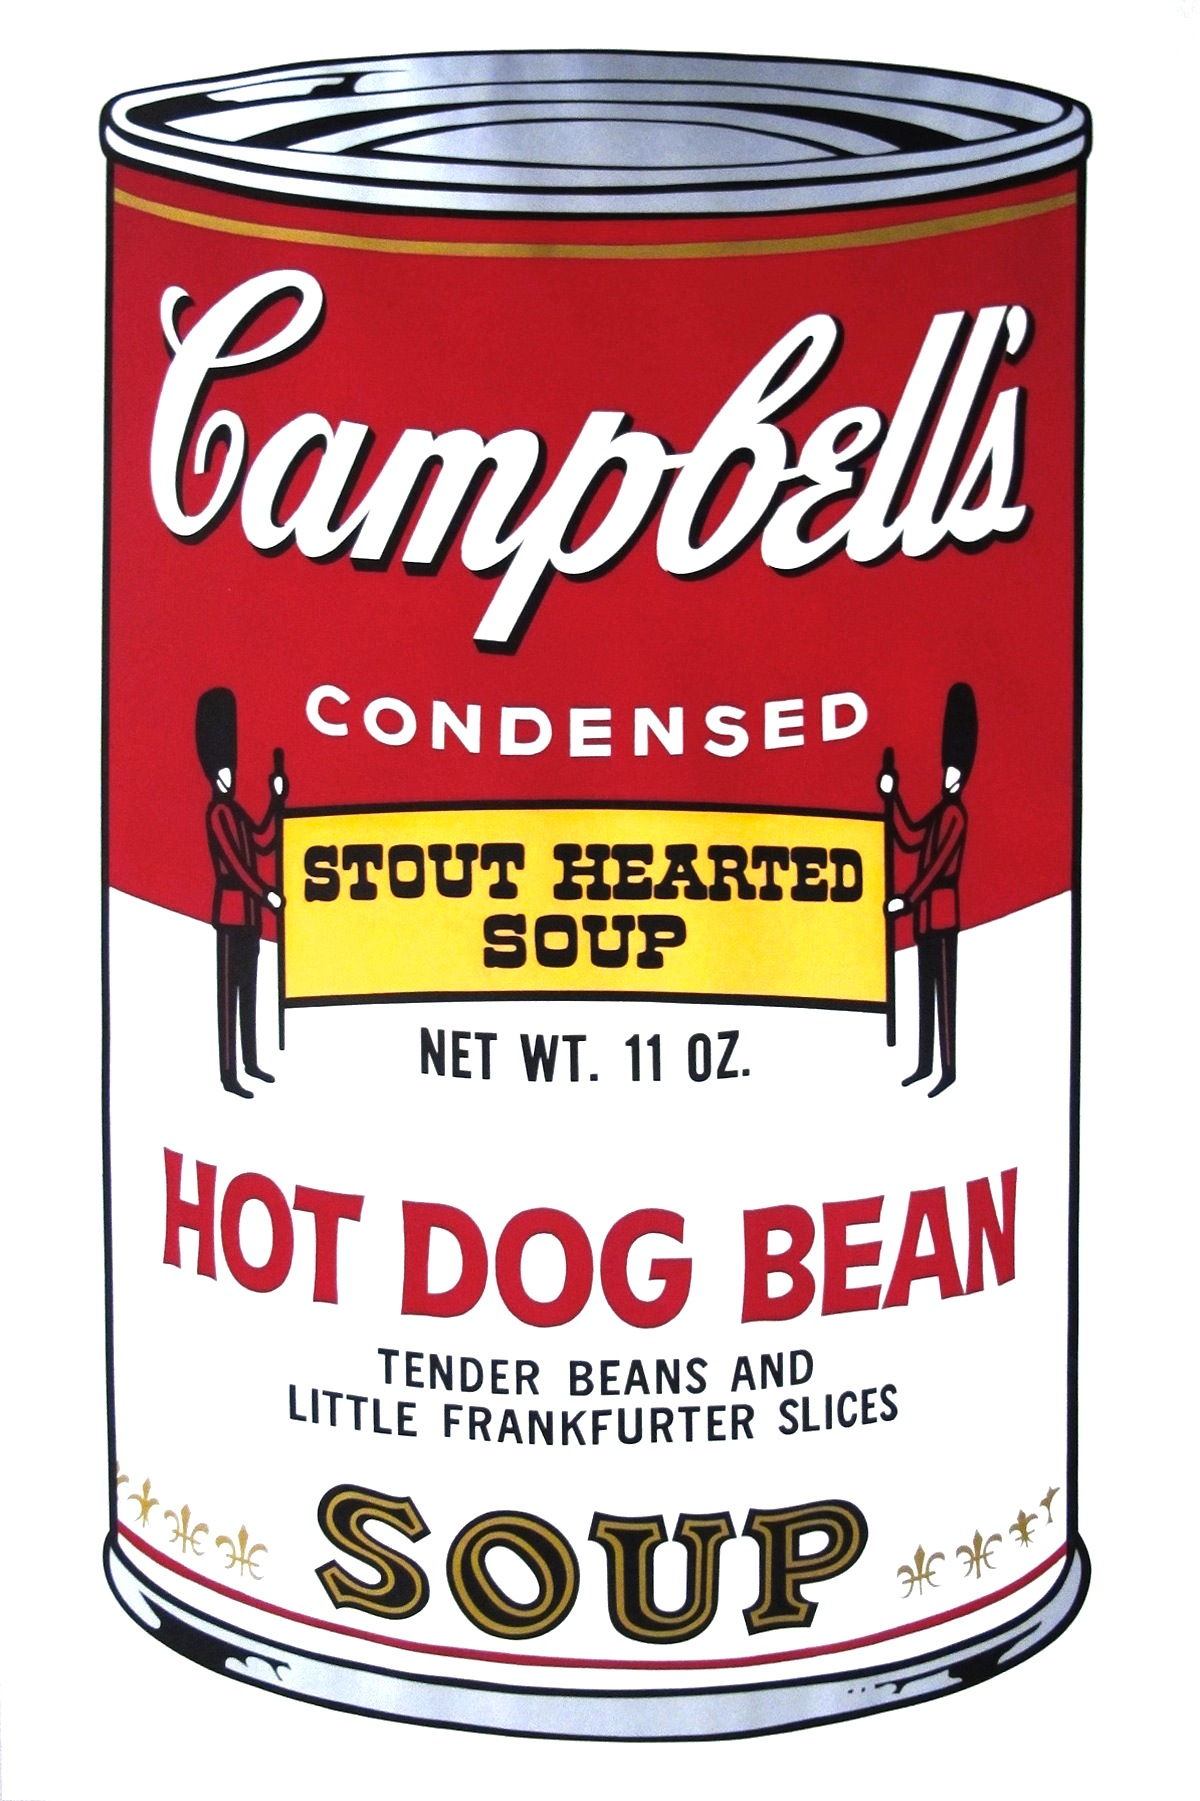 Campbell's Hot Dog Bean by Andy Warhol